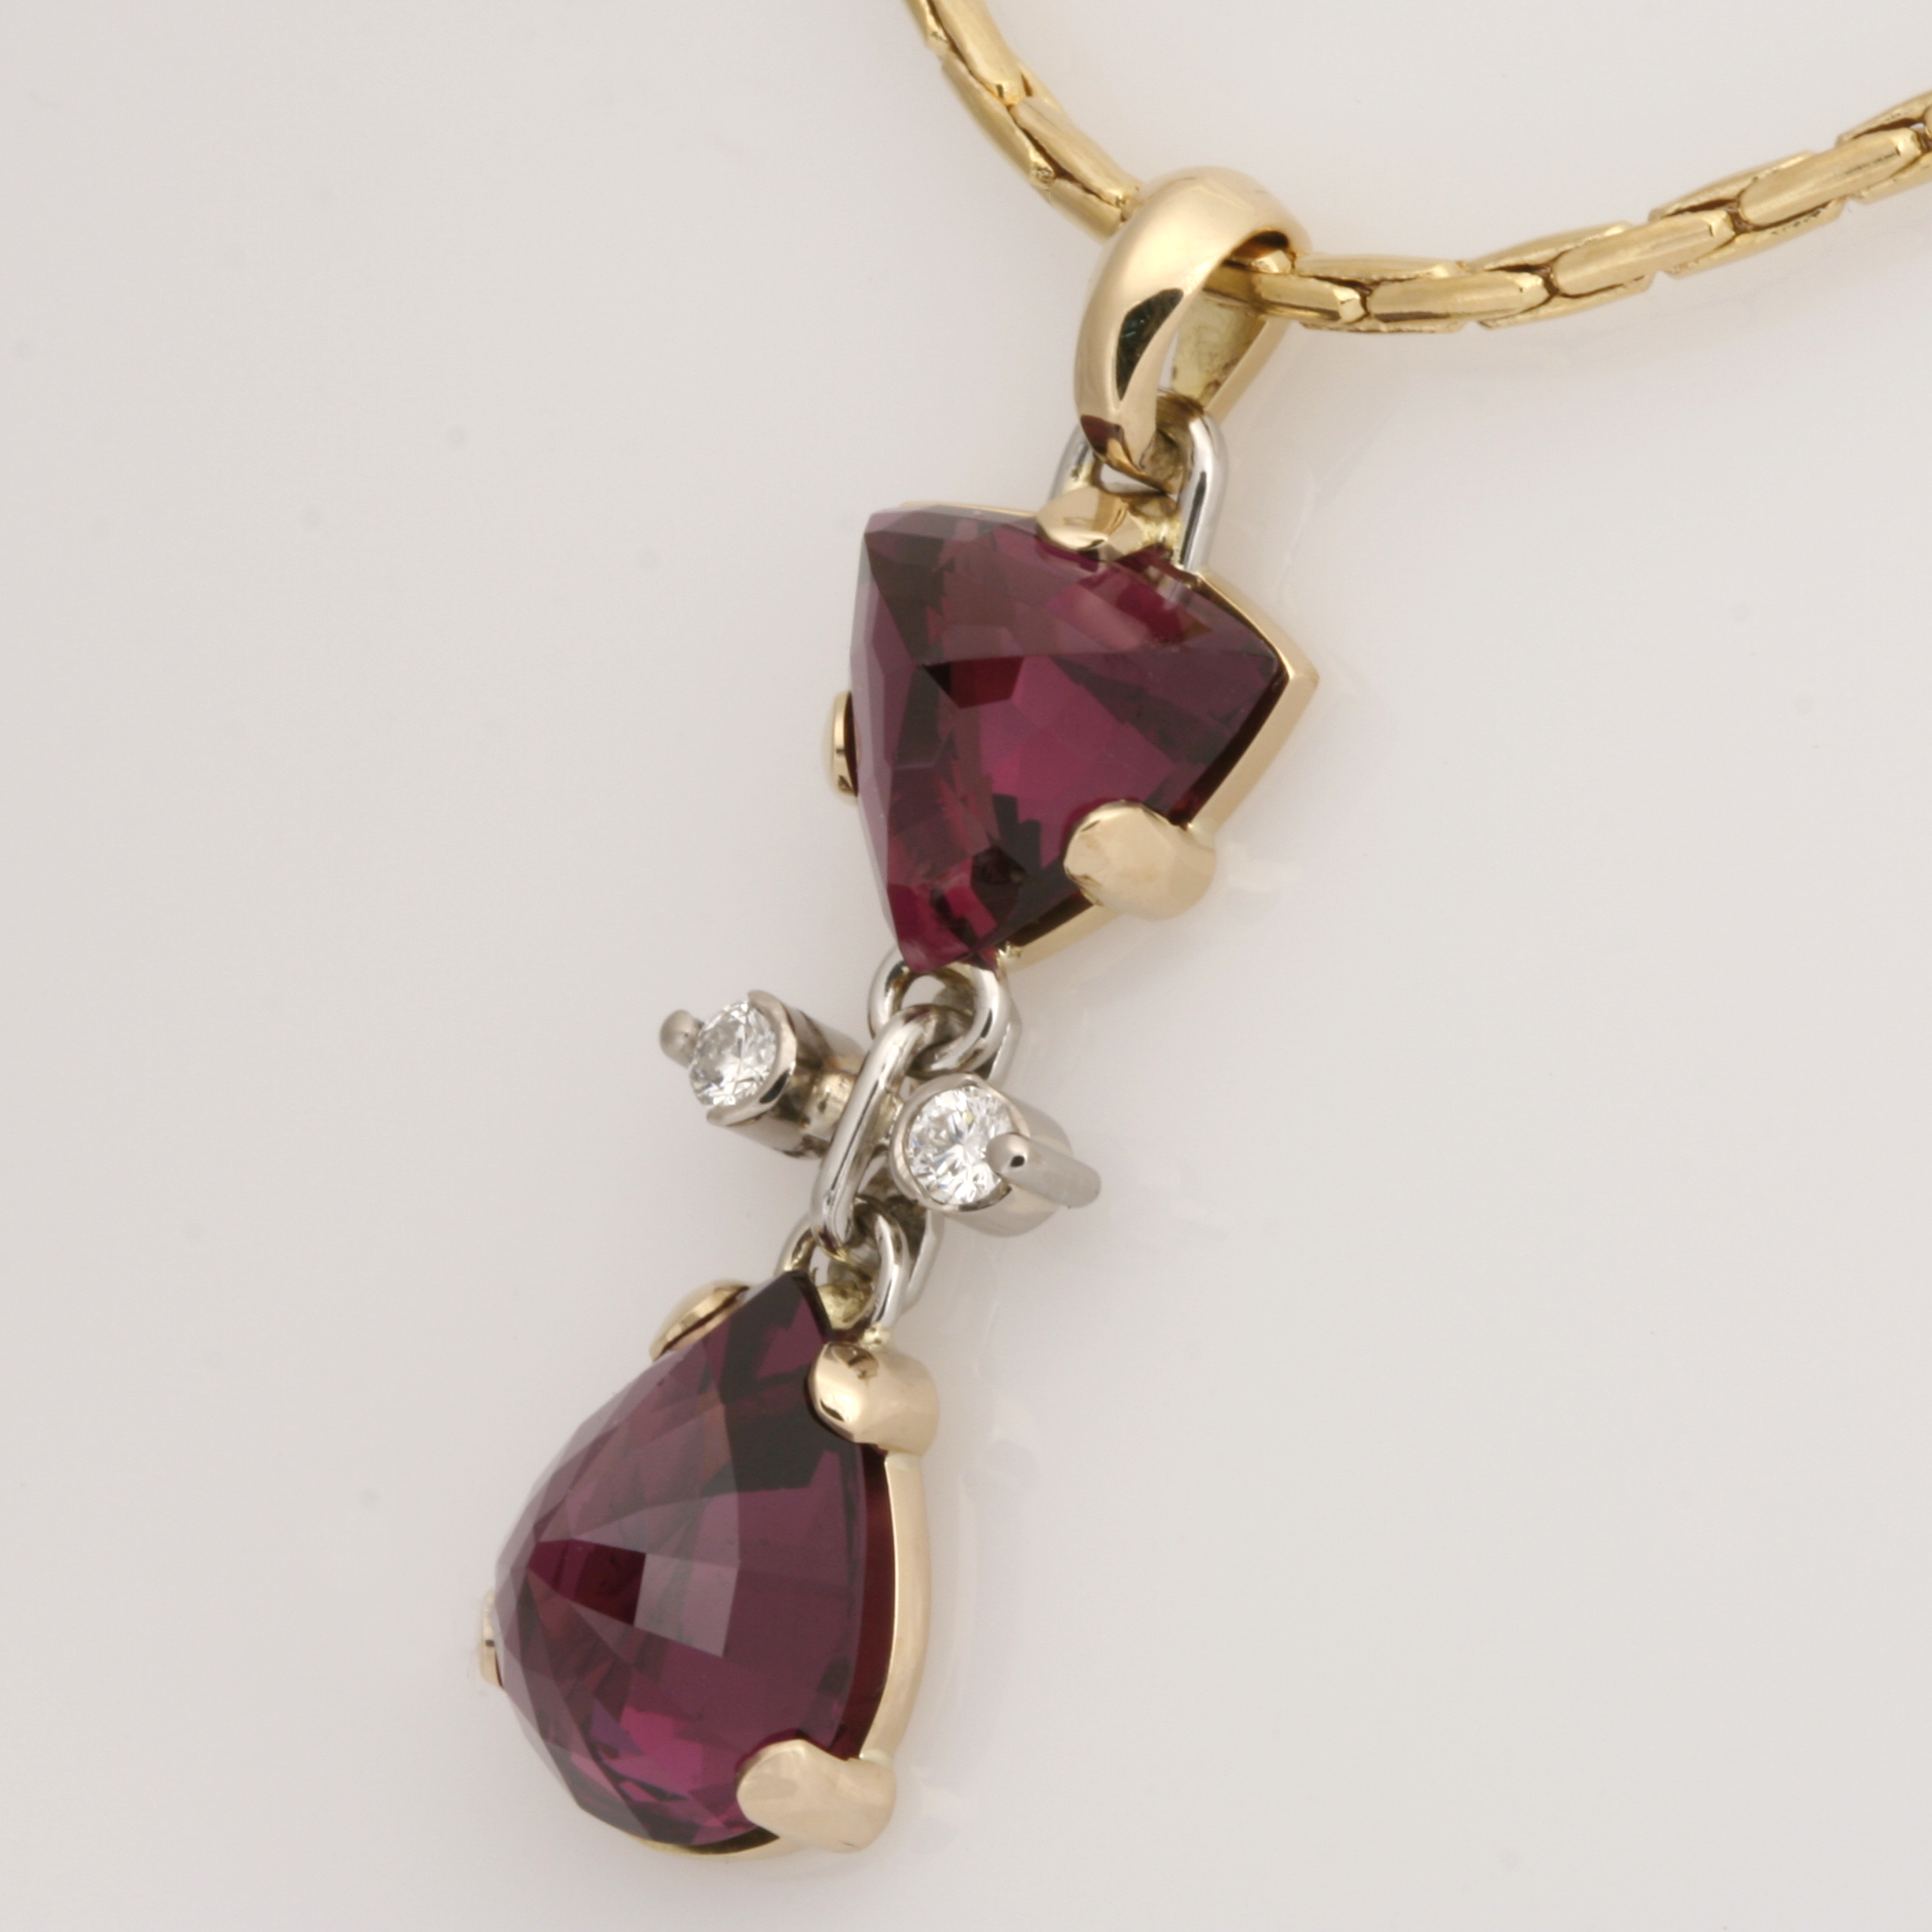 Handmade ladies 18ct yellow gold and platinum pendant featuring rhodolite garnets and diamonds